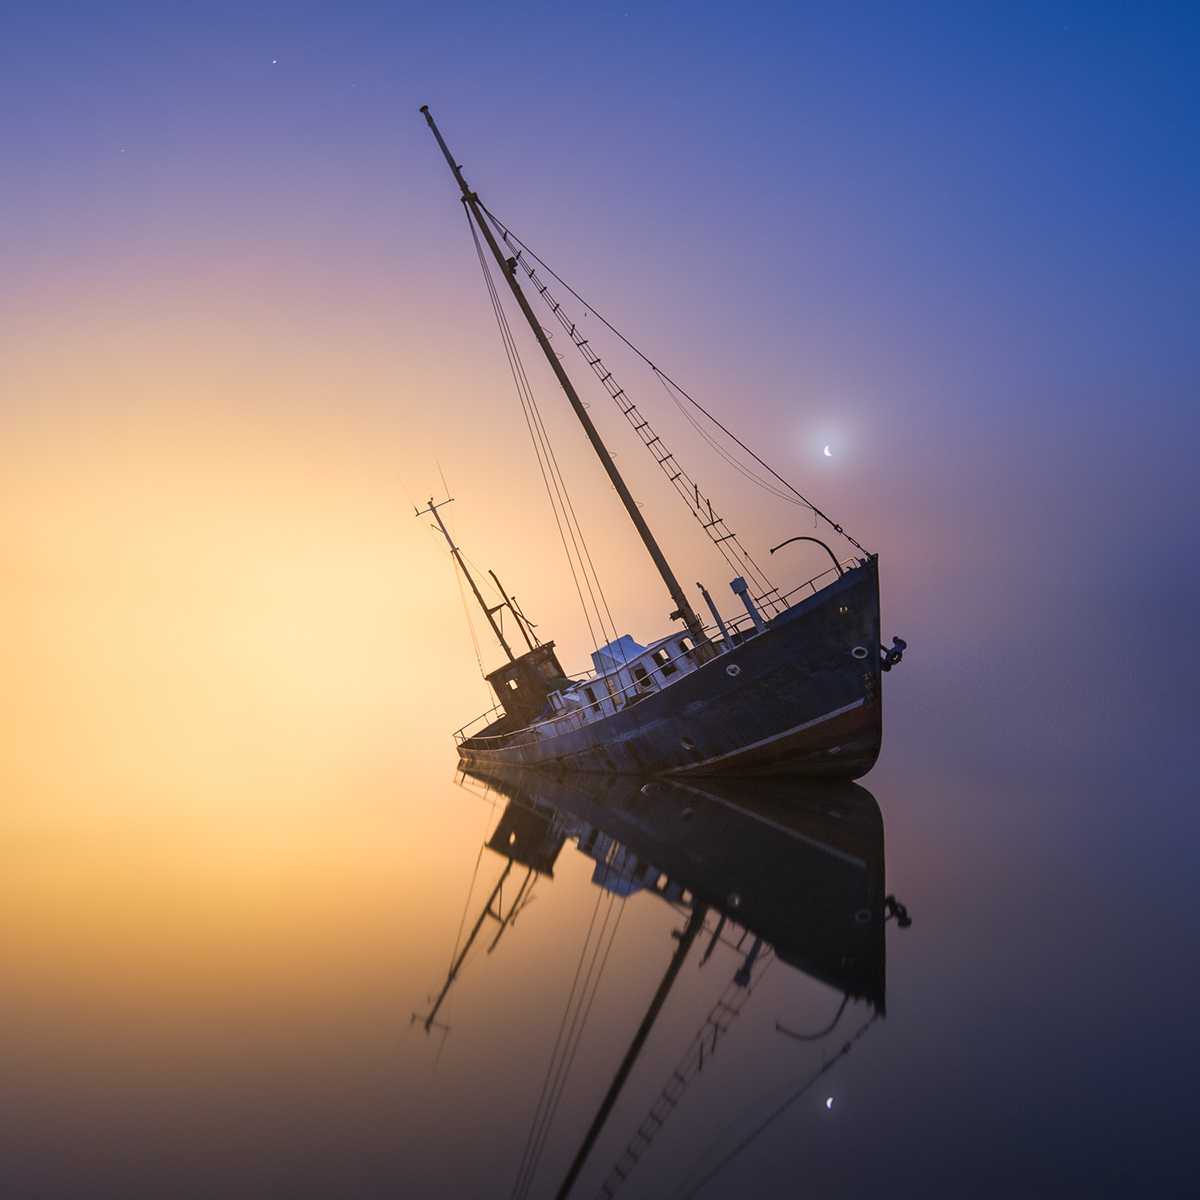 Mikko Lagerstedt - Invisible by day - 6